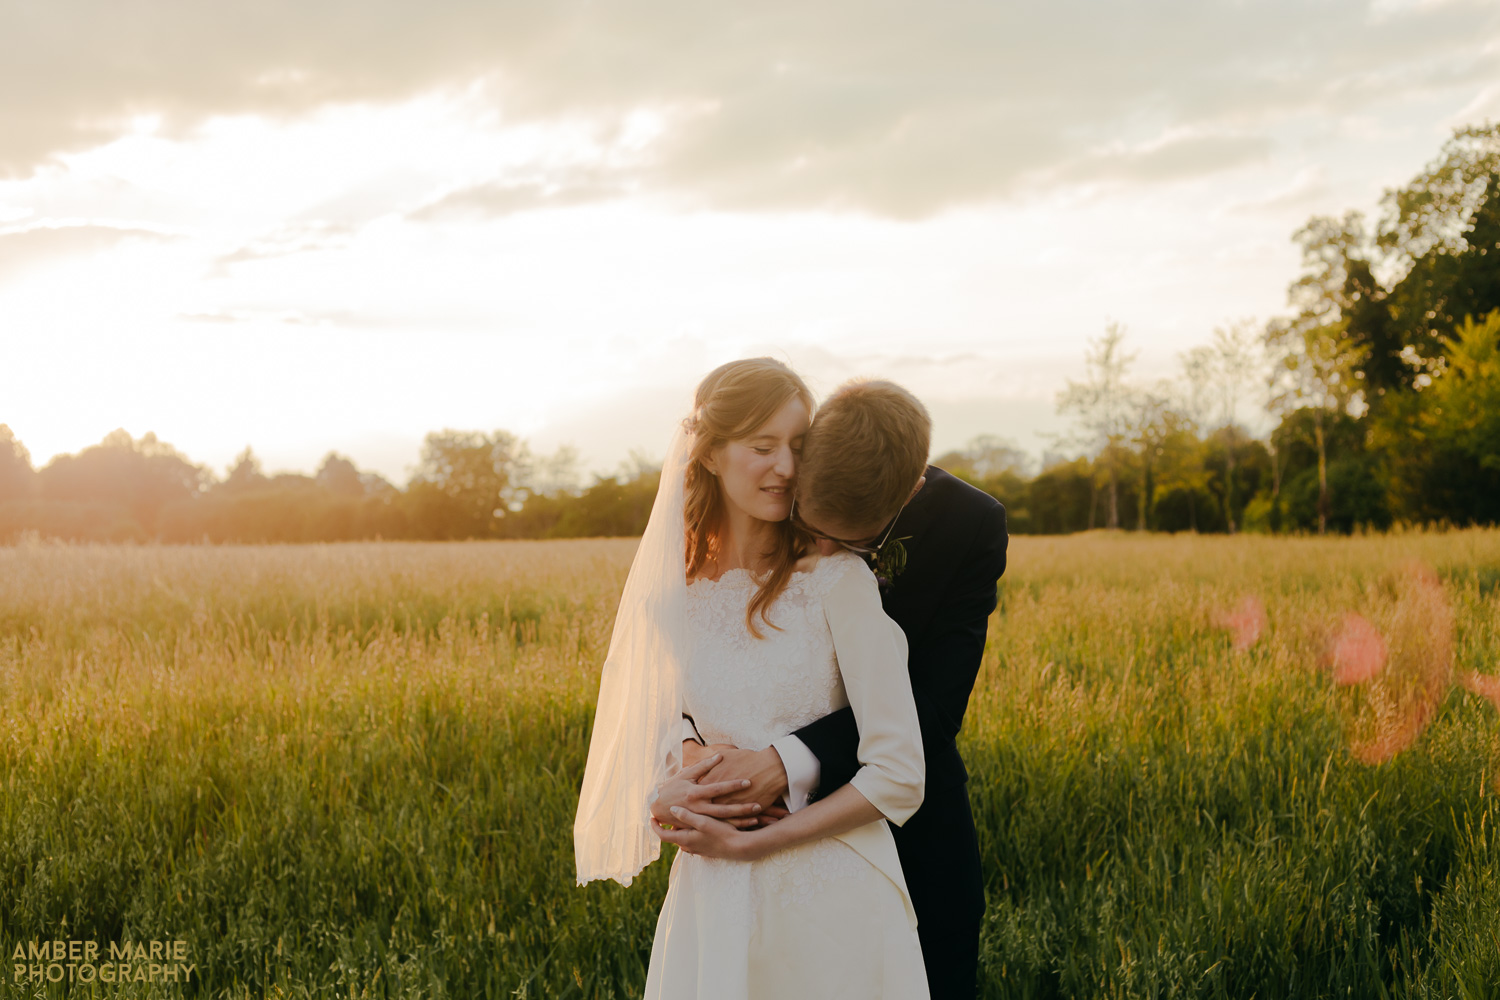 Natural portrait of bride and groom in a field at sunset